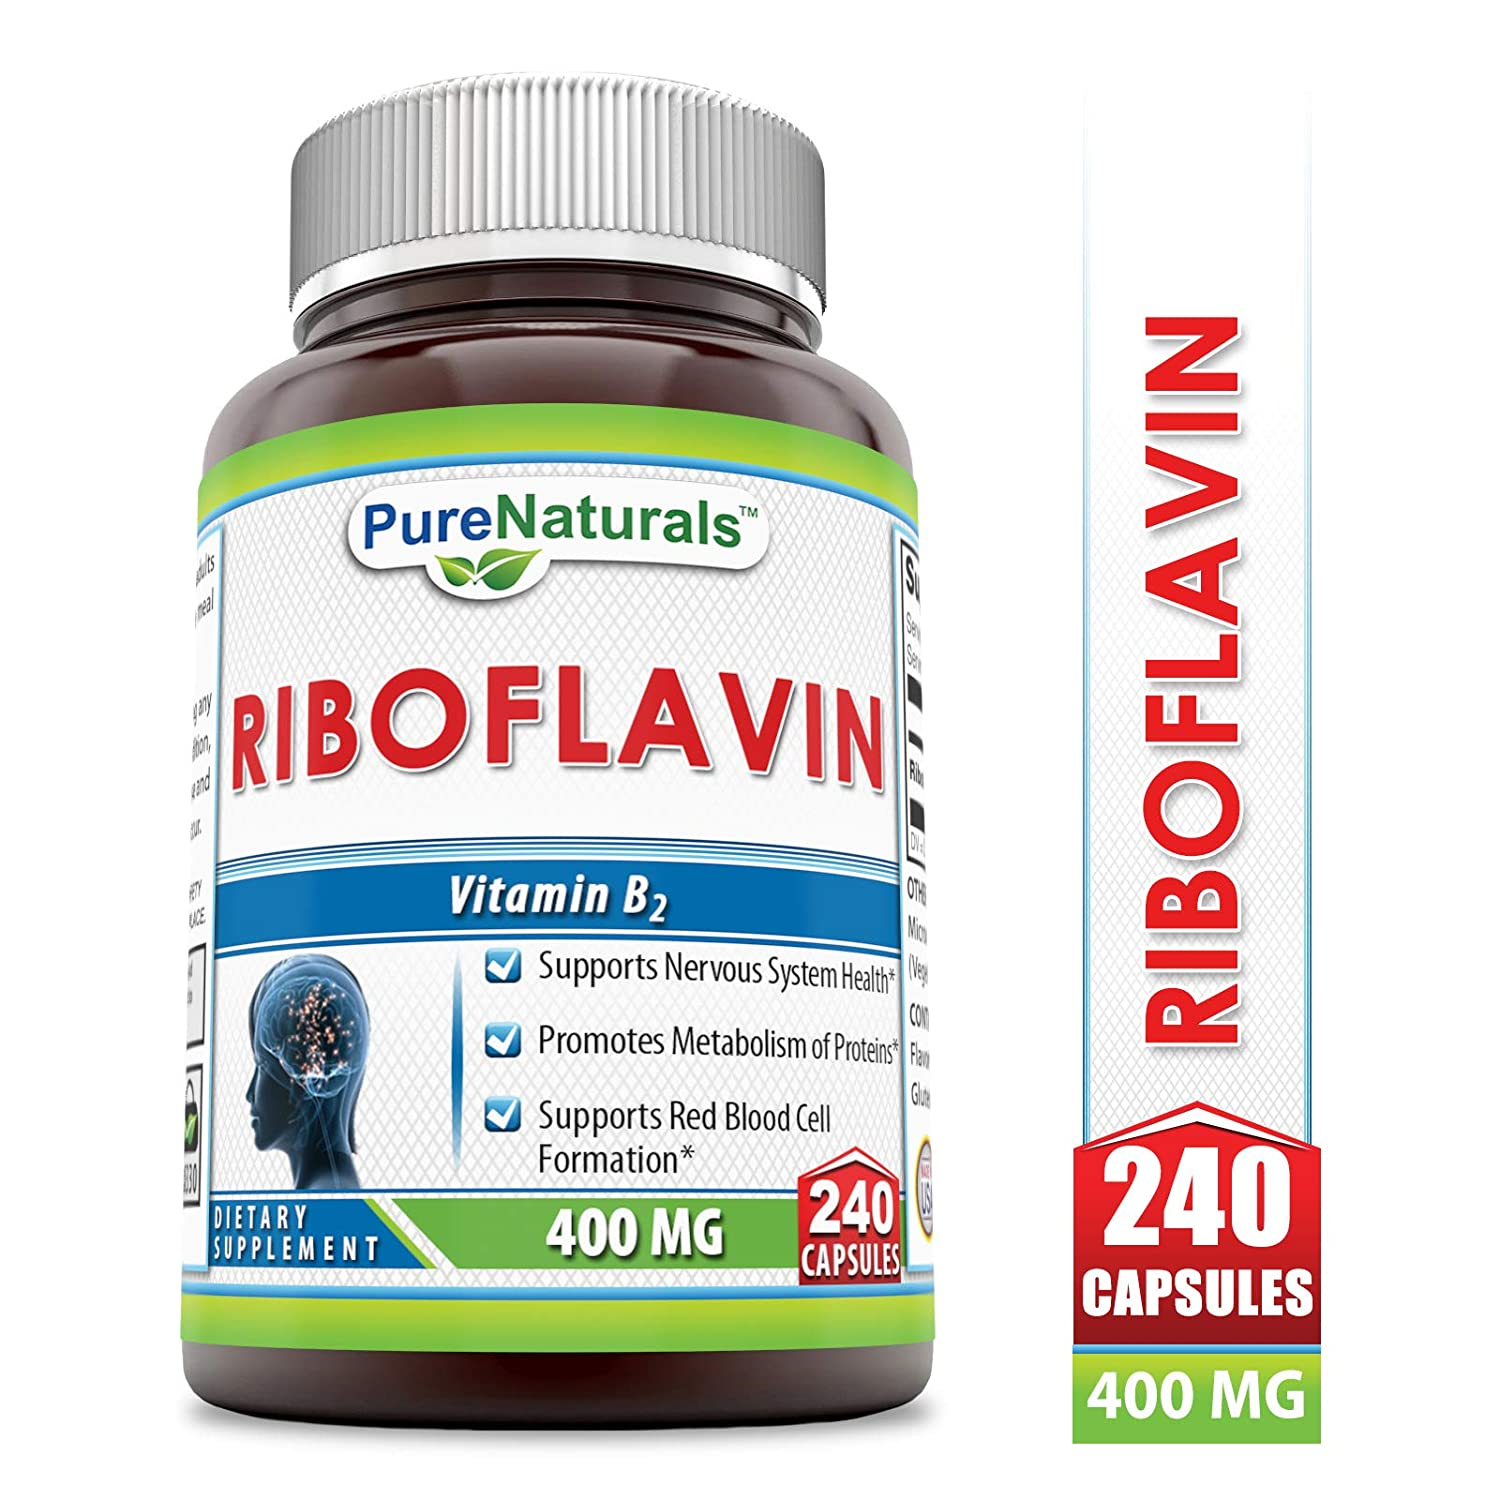 Pure Naturals Riboflavin 400 Mg, 240 Capsules -Supports Nervous System Health -Promotes Metabolism of Proteins -Supports Red Blood Cell Formation